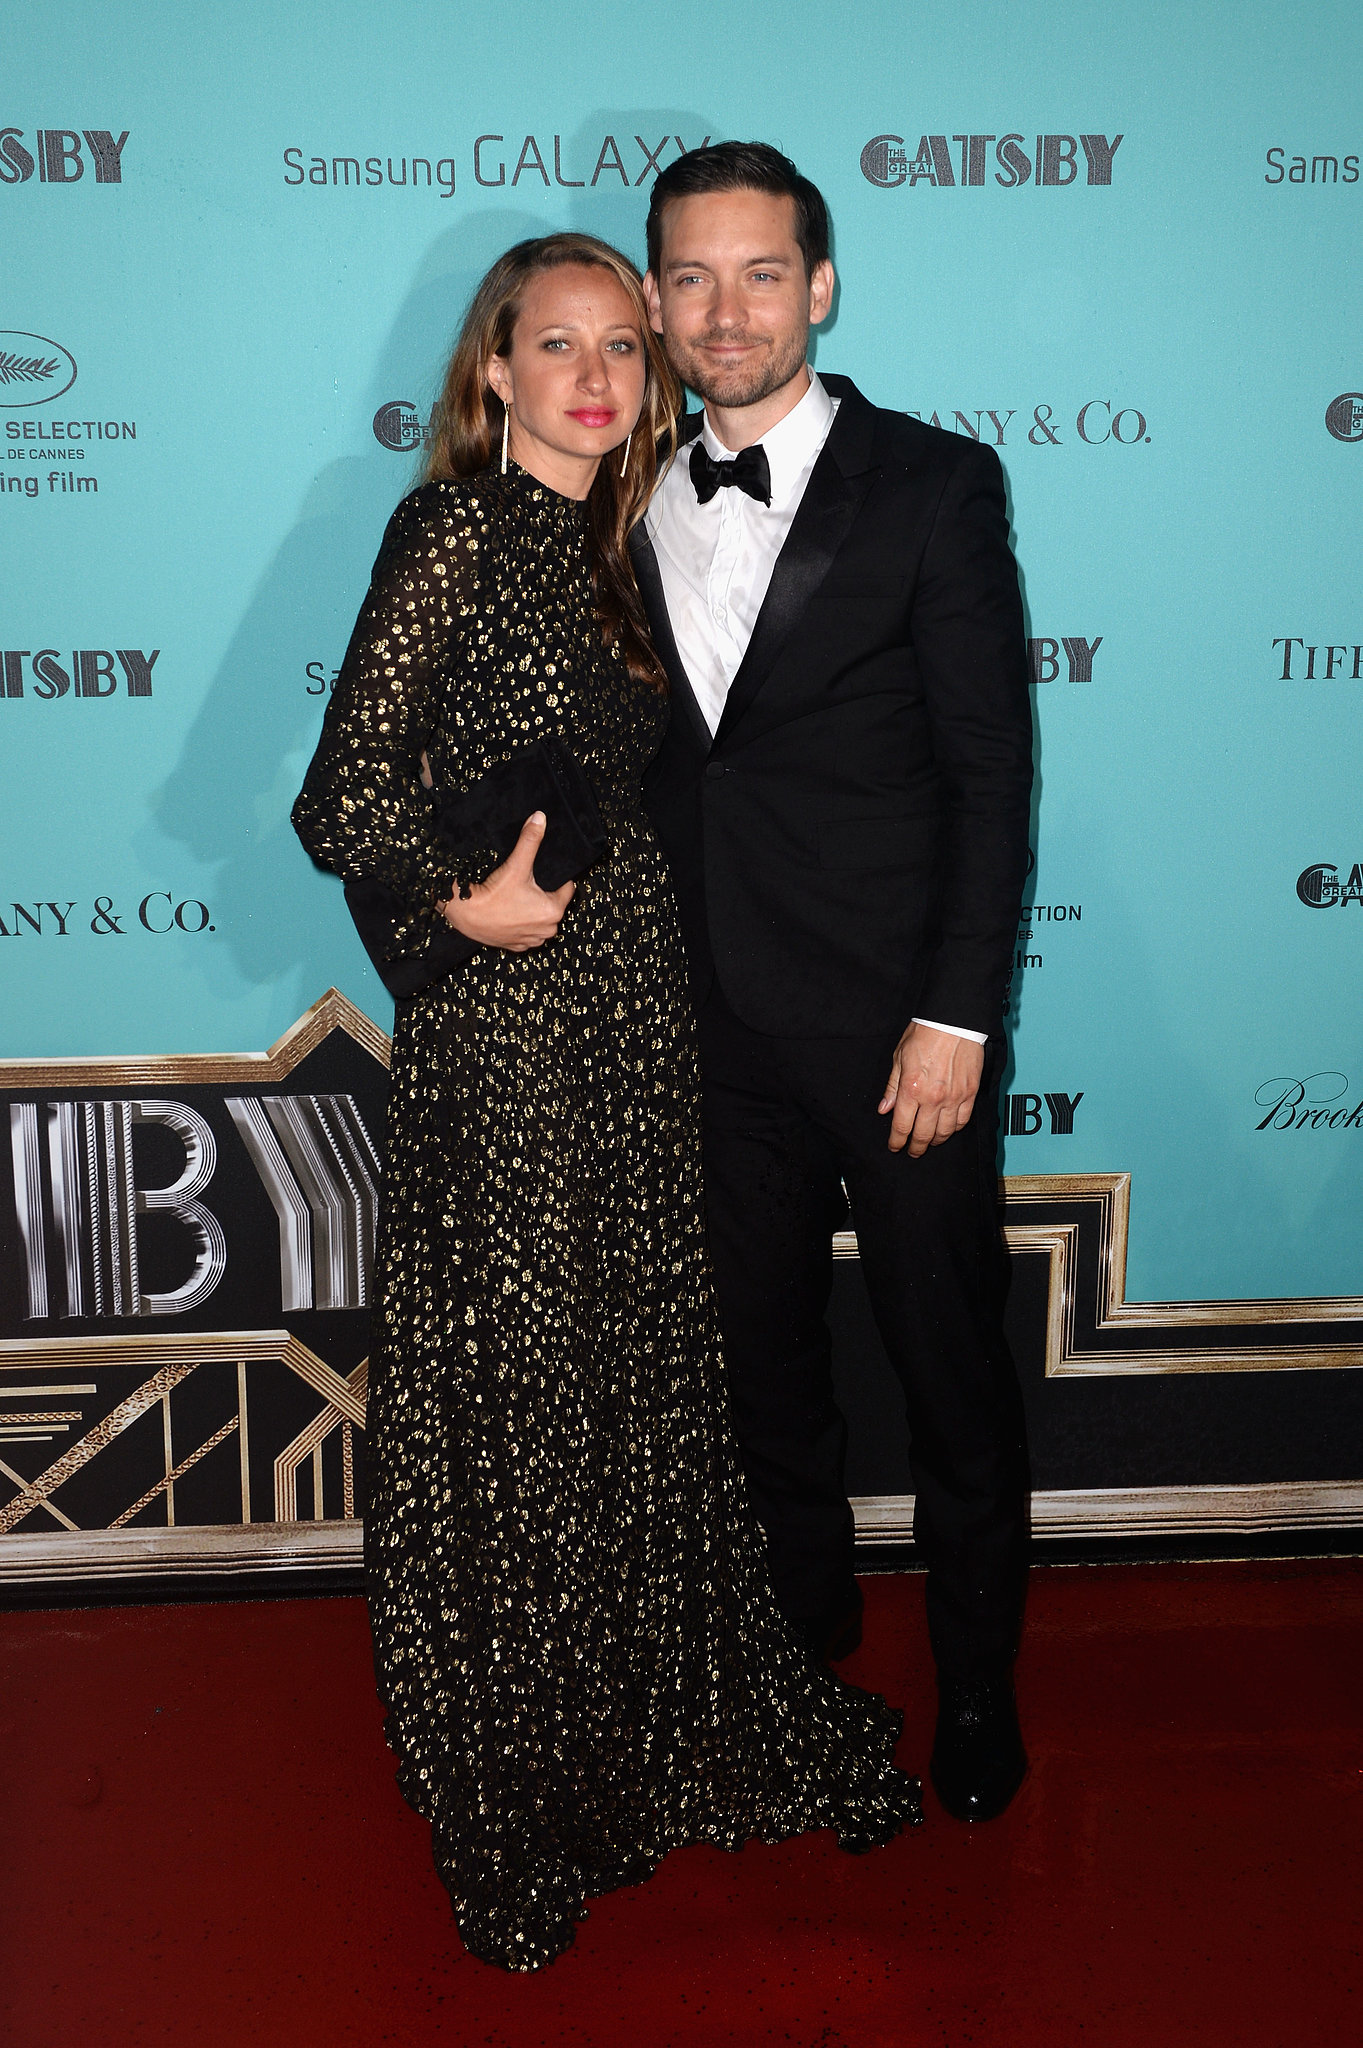 Tobey Maguire and wife Jennifer Meyer looked like a glamorous duo at the Great Gatsby party at Cannes.